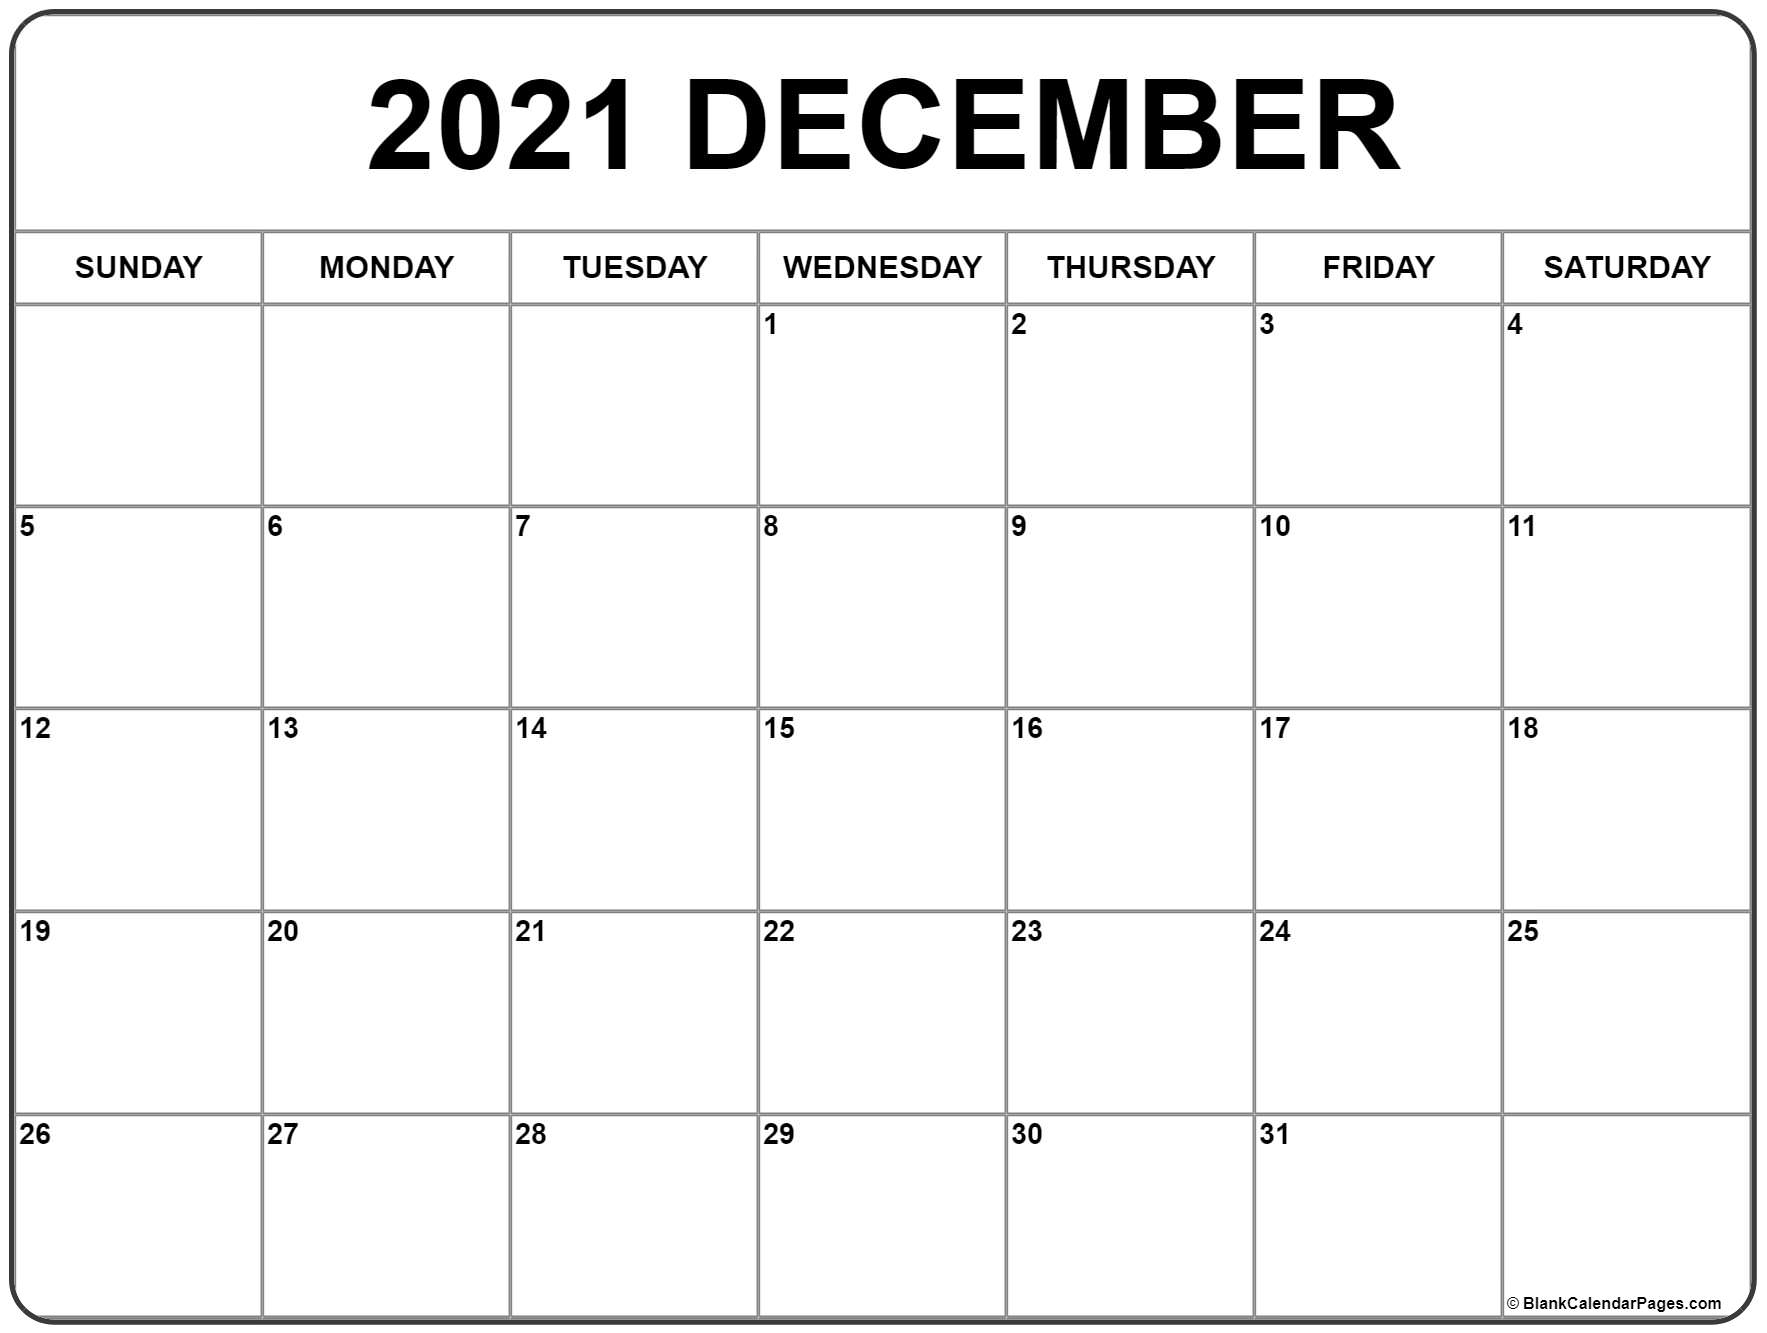 Pick December Christmas Calendar Printable 2021